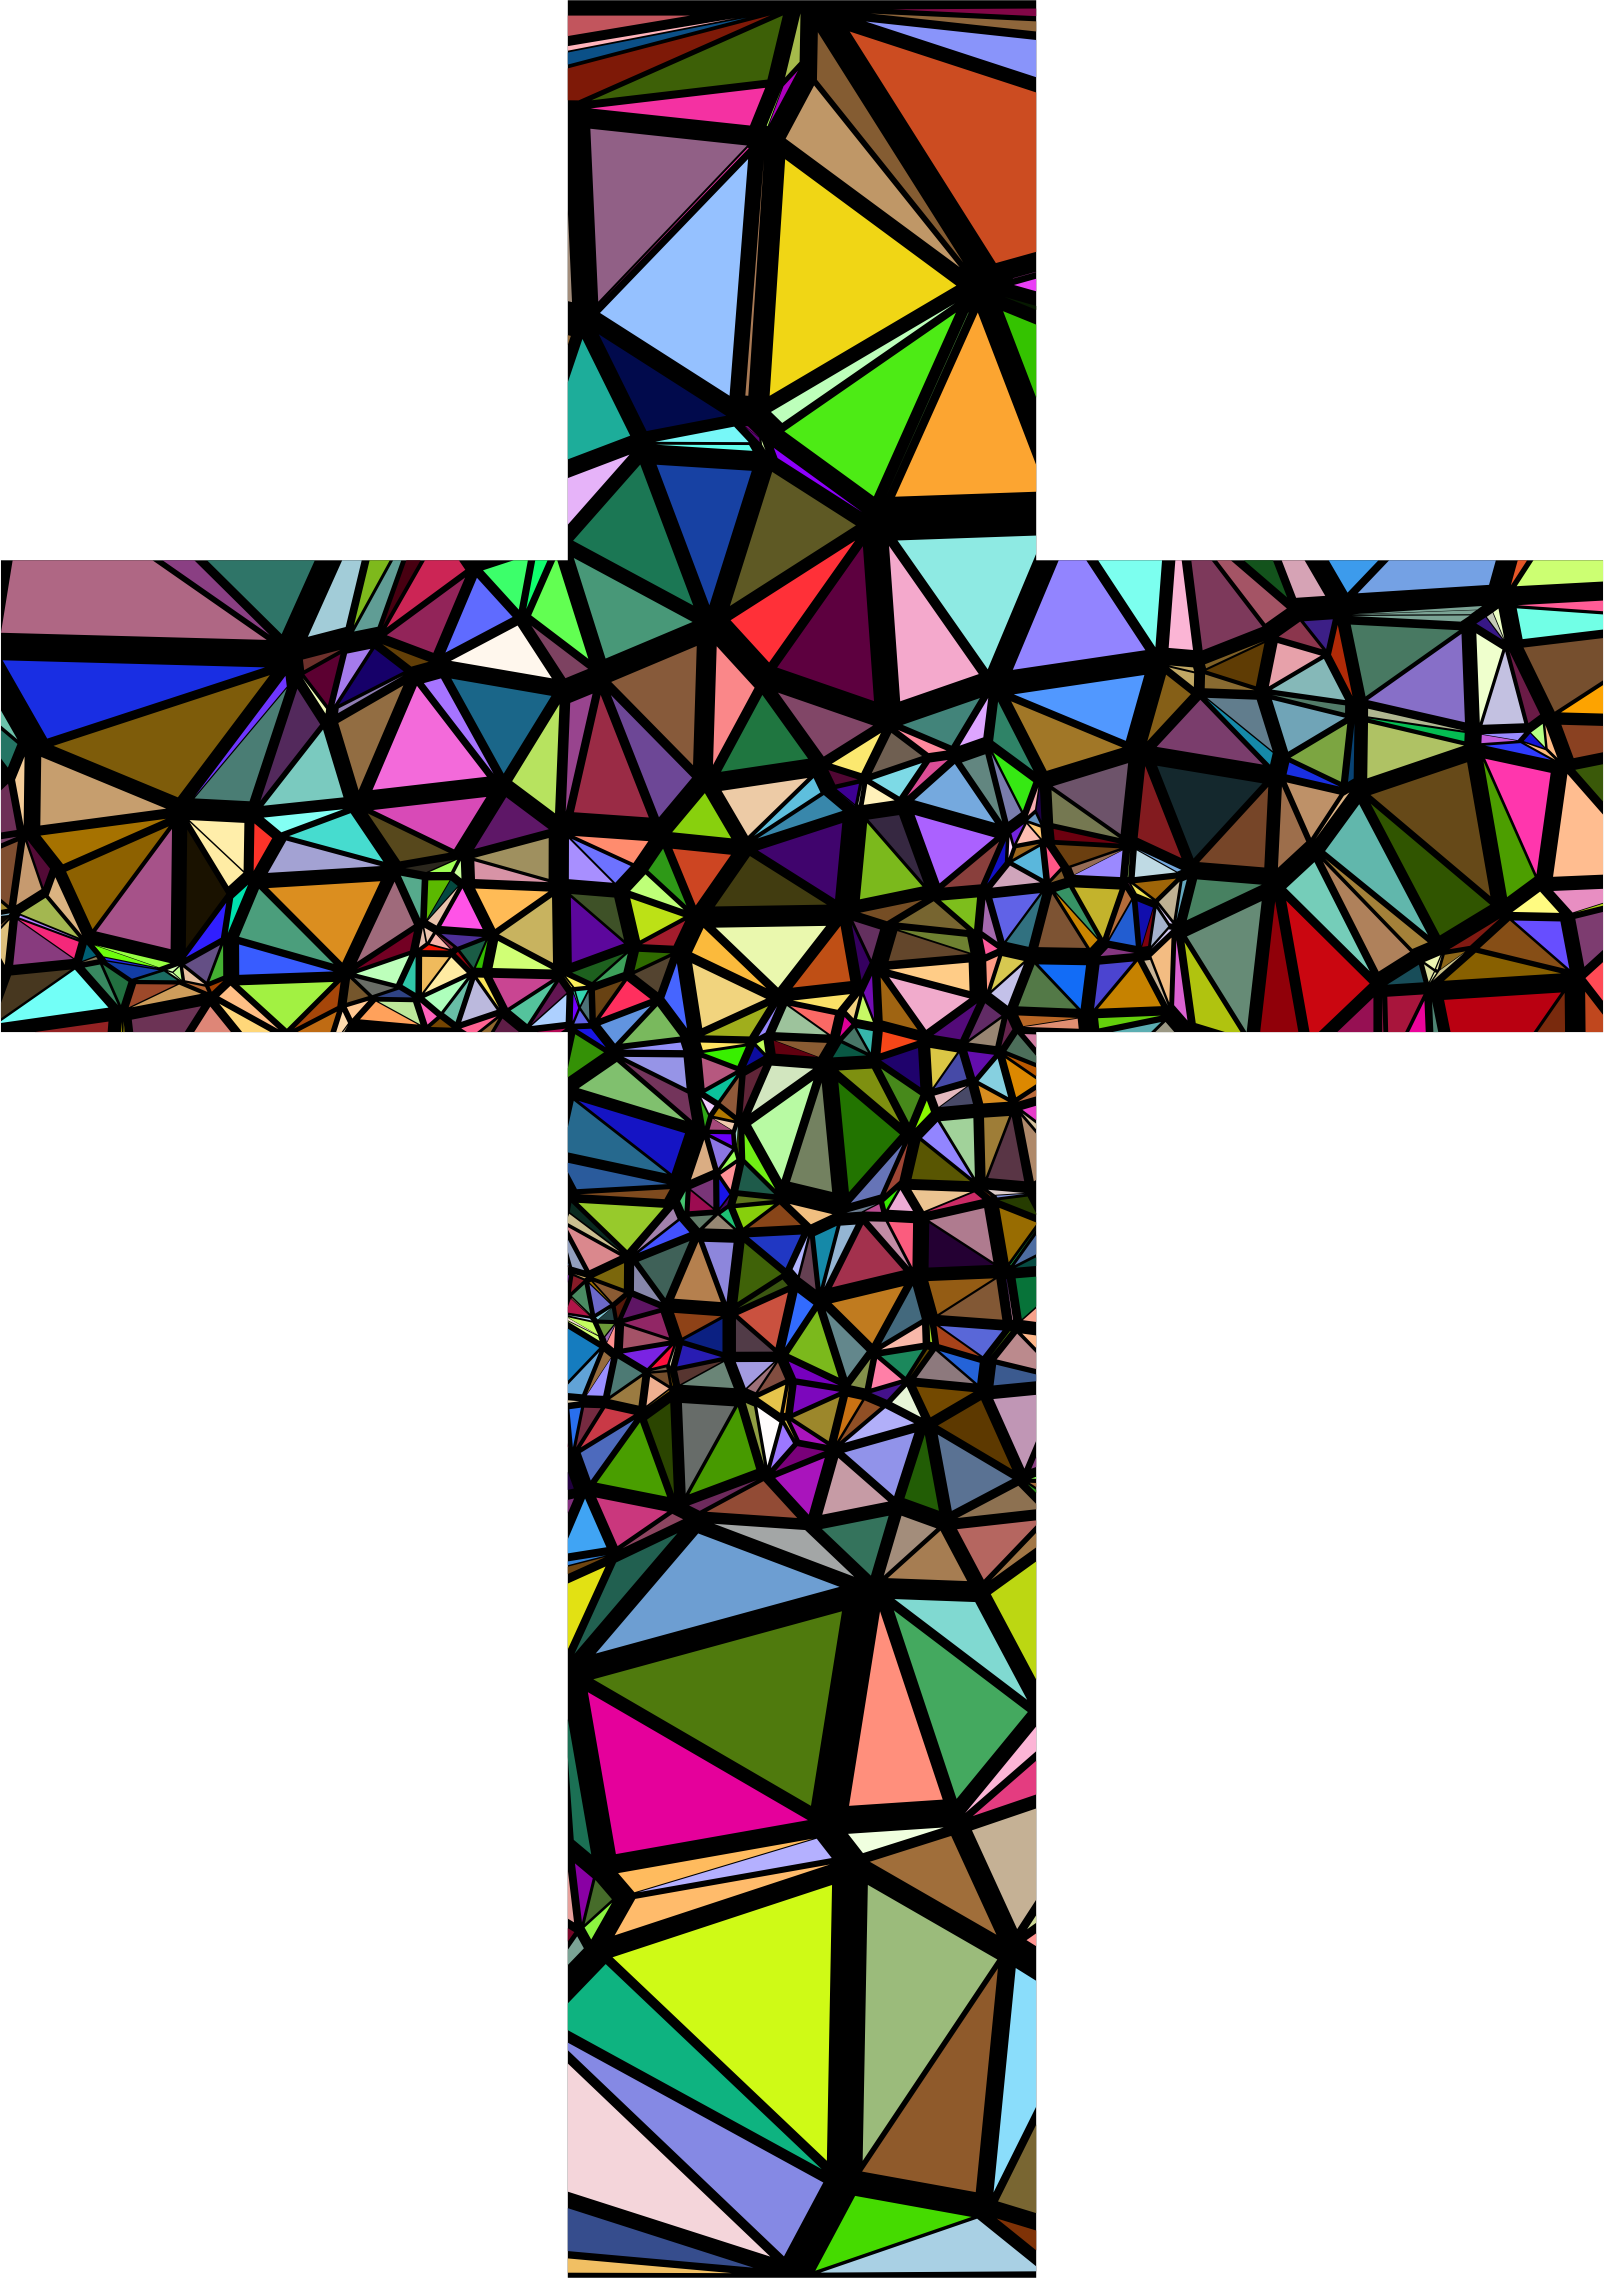 Crucifix clipart contemporary cross. Low poly stained glass